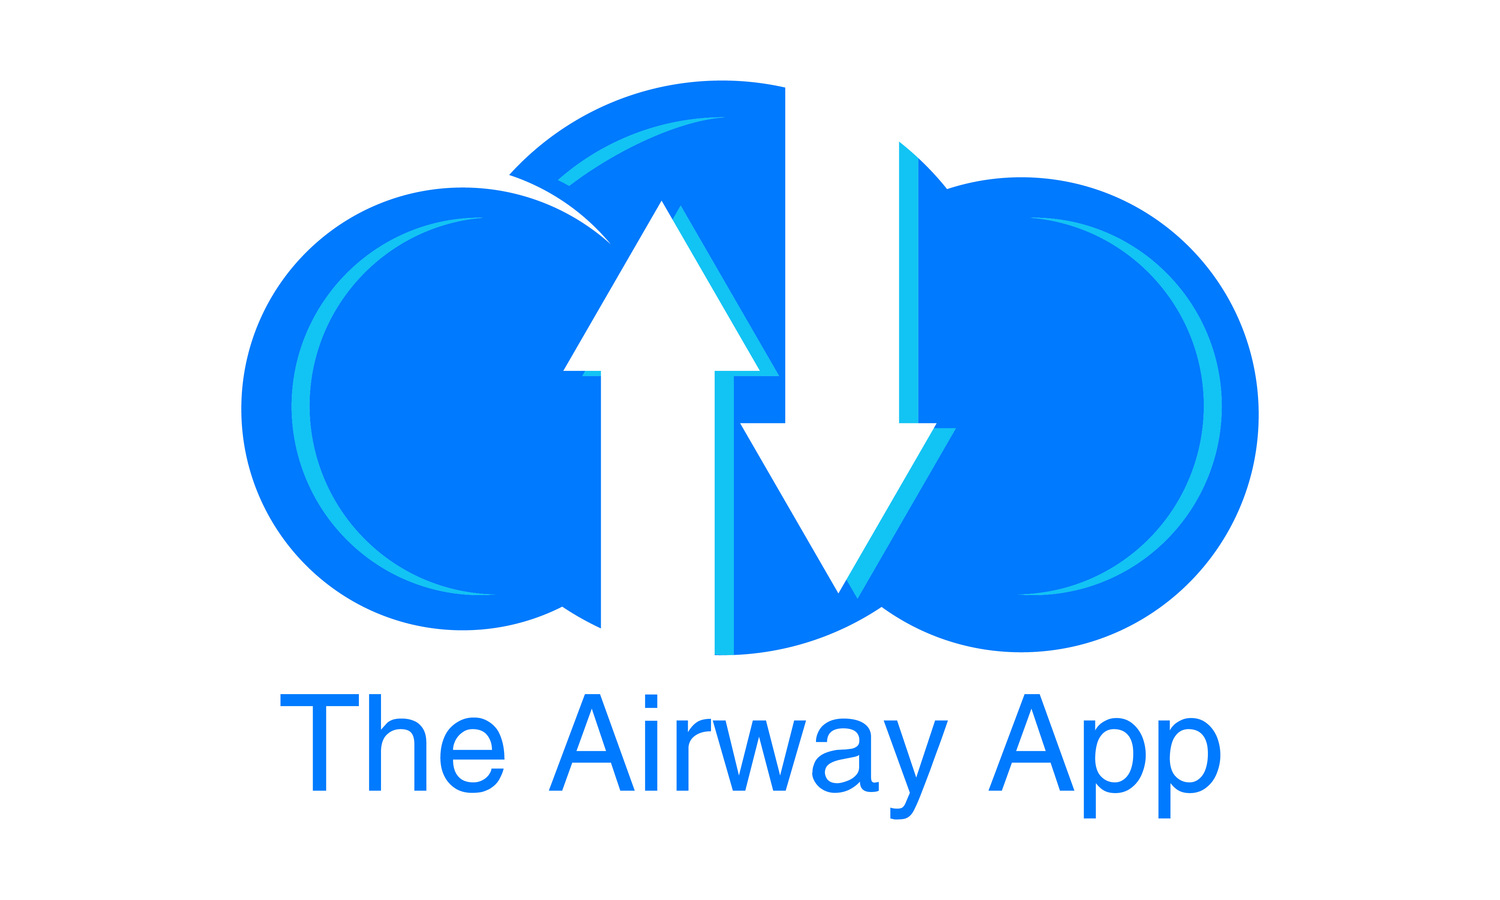 The Airway App